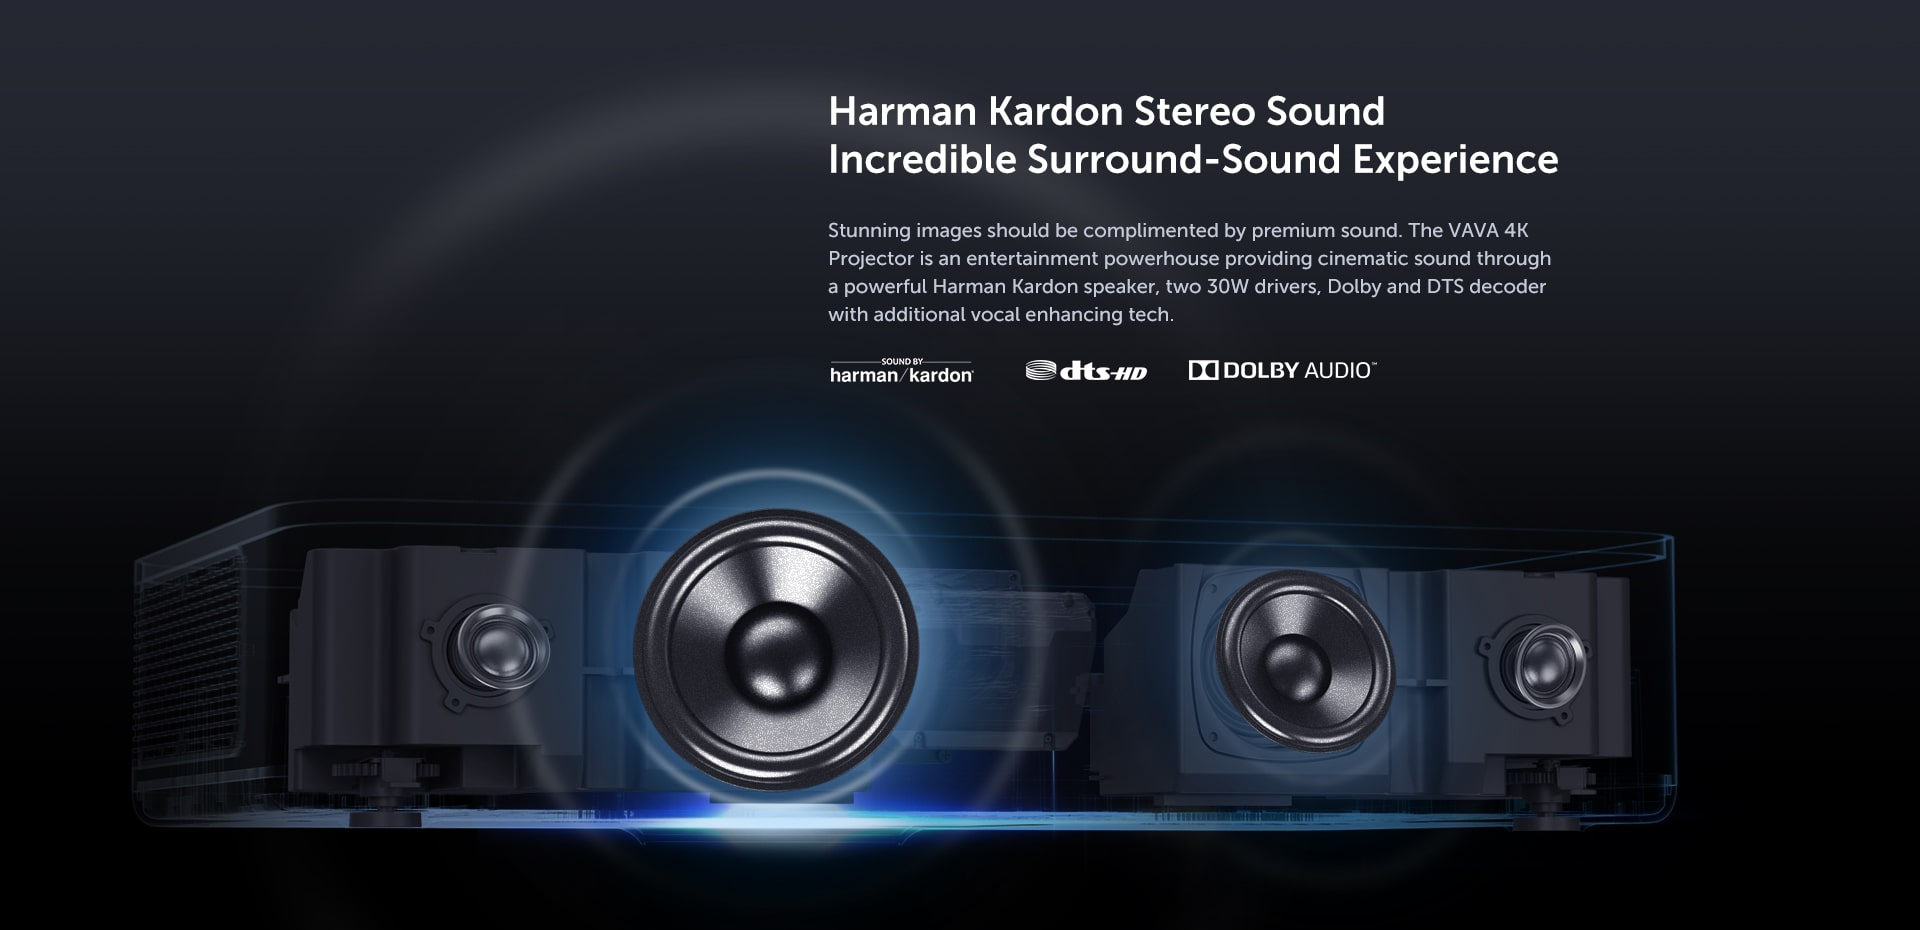 Harman Kardon Stereo Sound